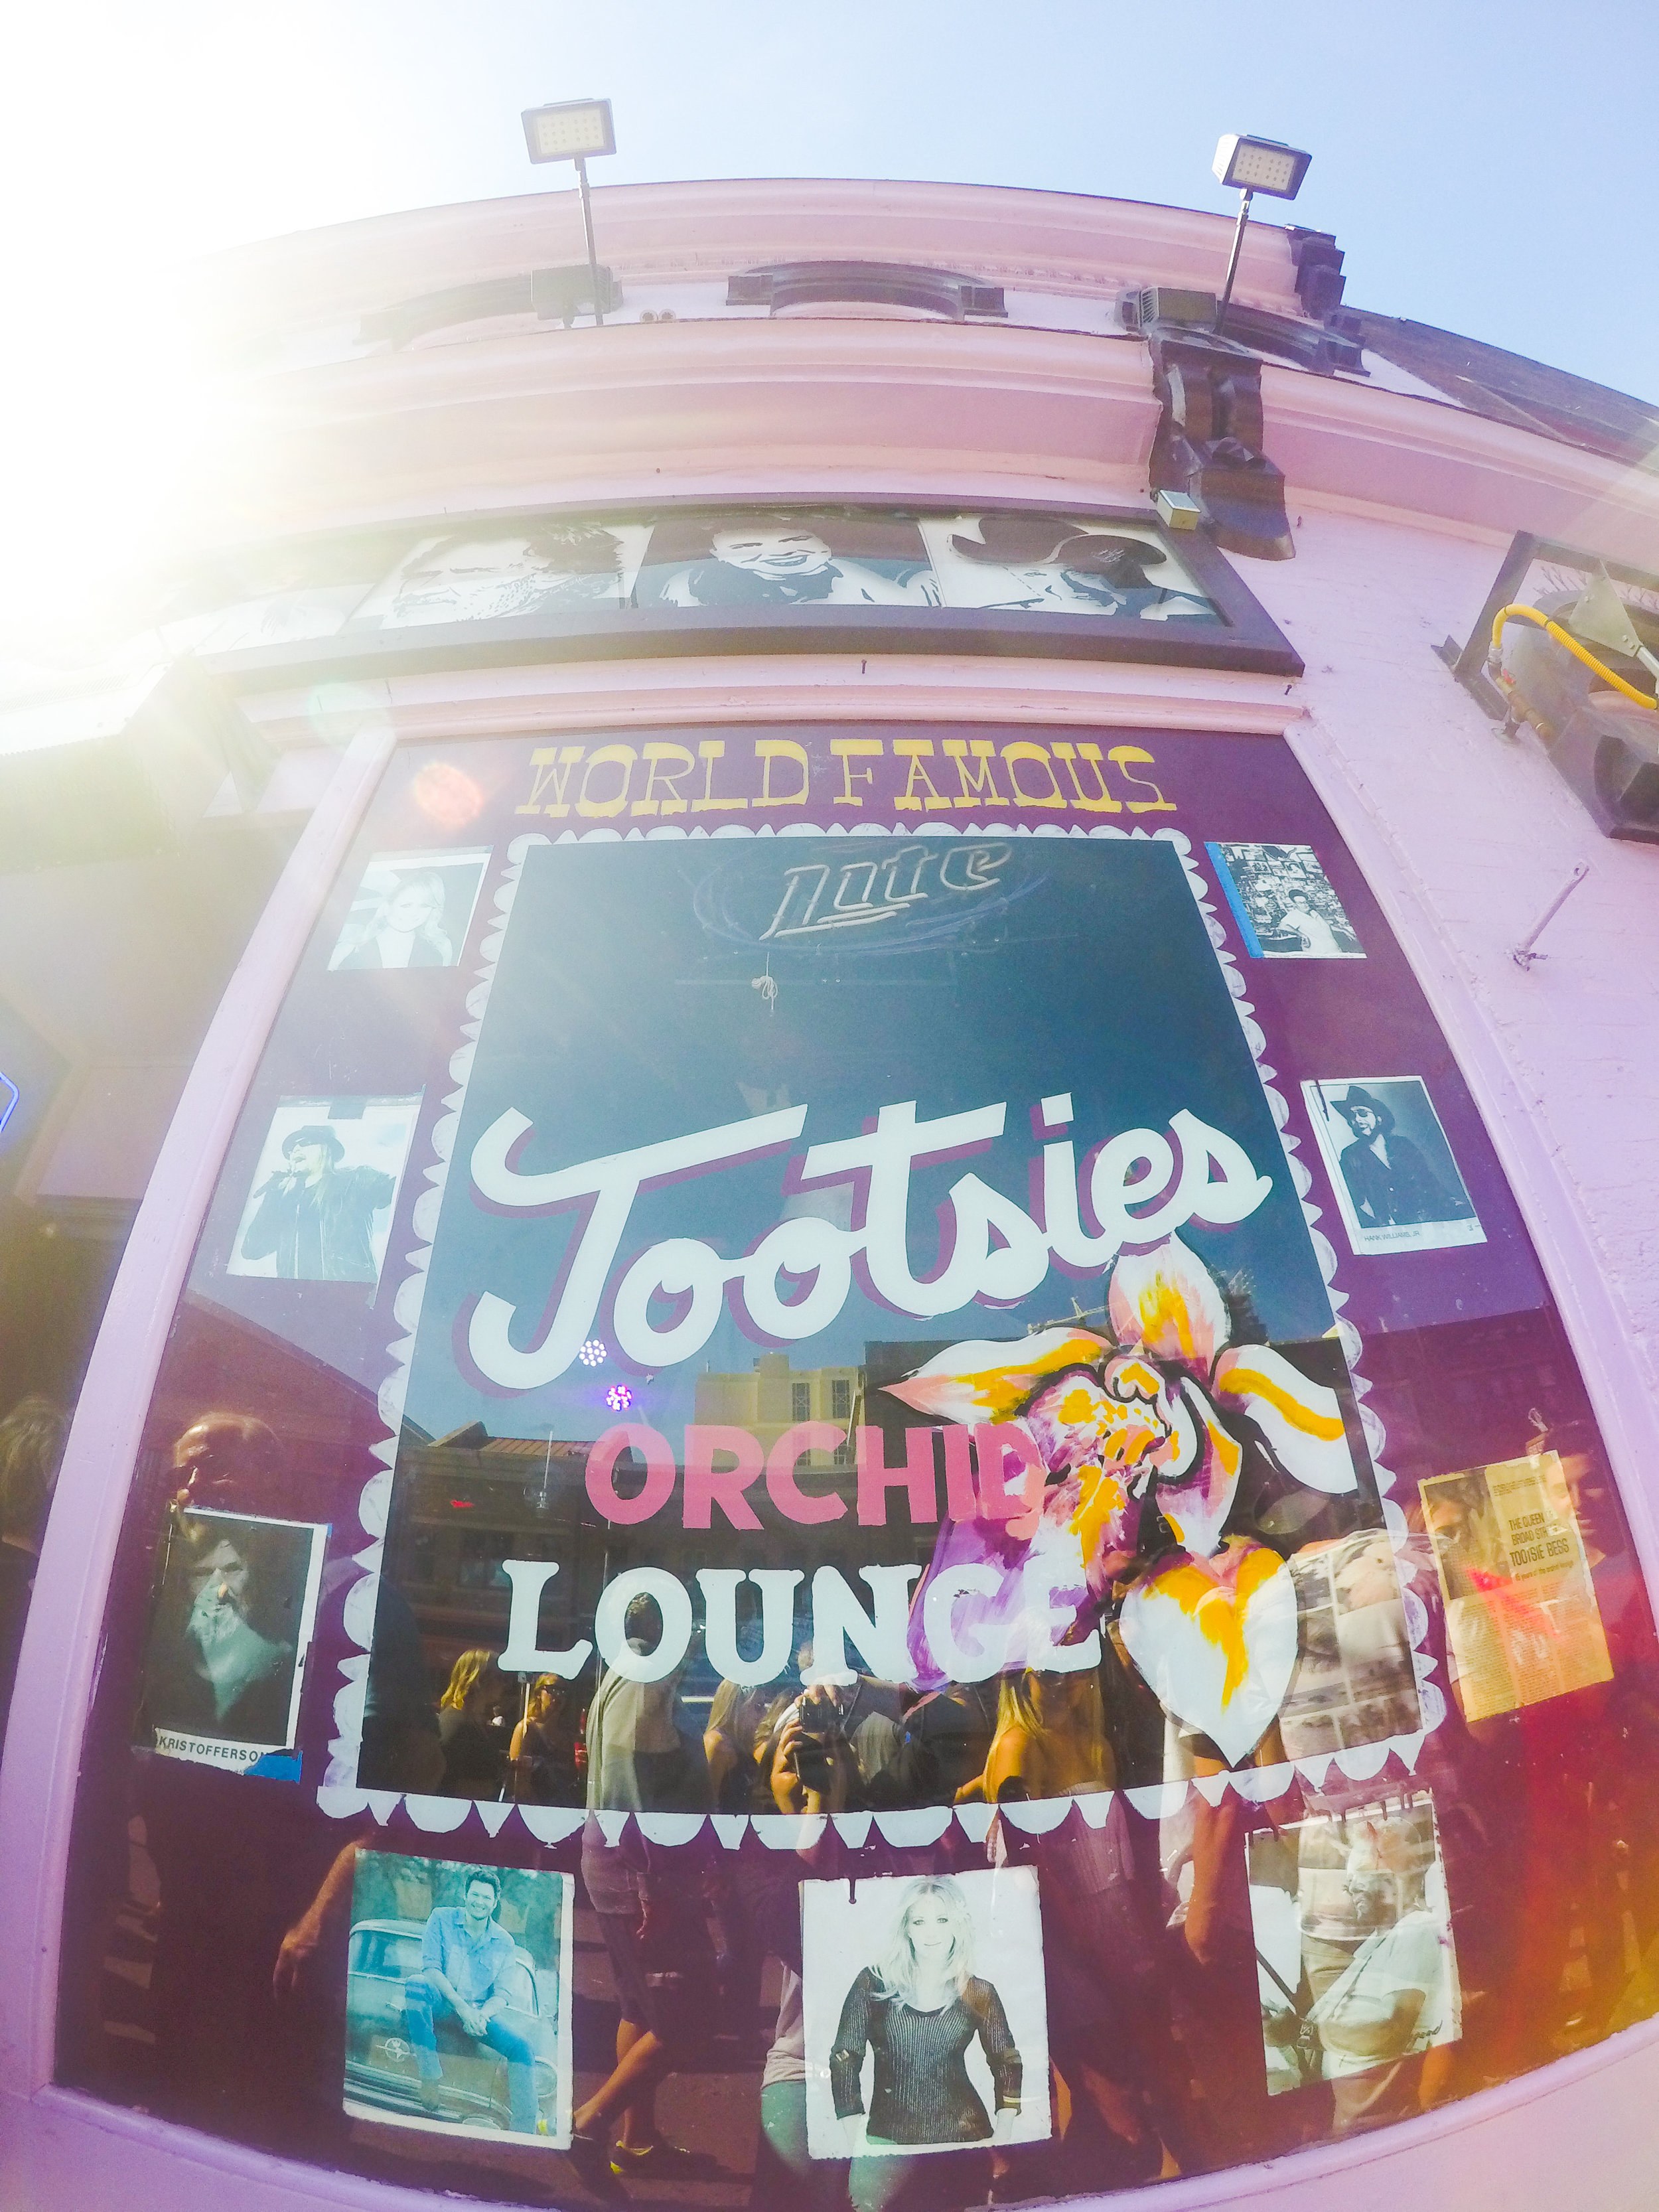 Nashville Rooftop - Tootsies World Famous Orchid Lounge